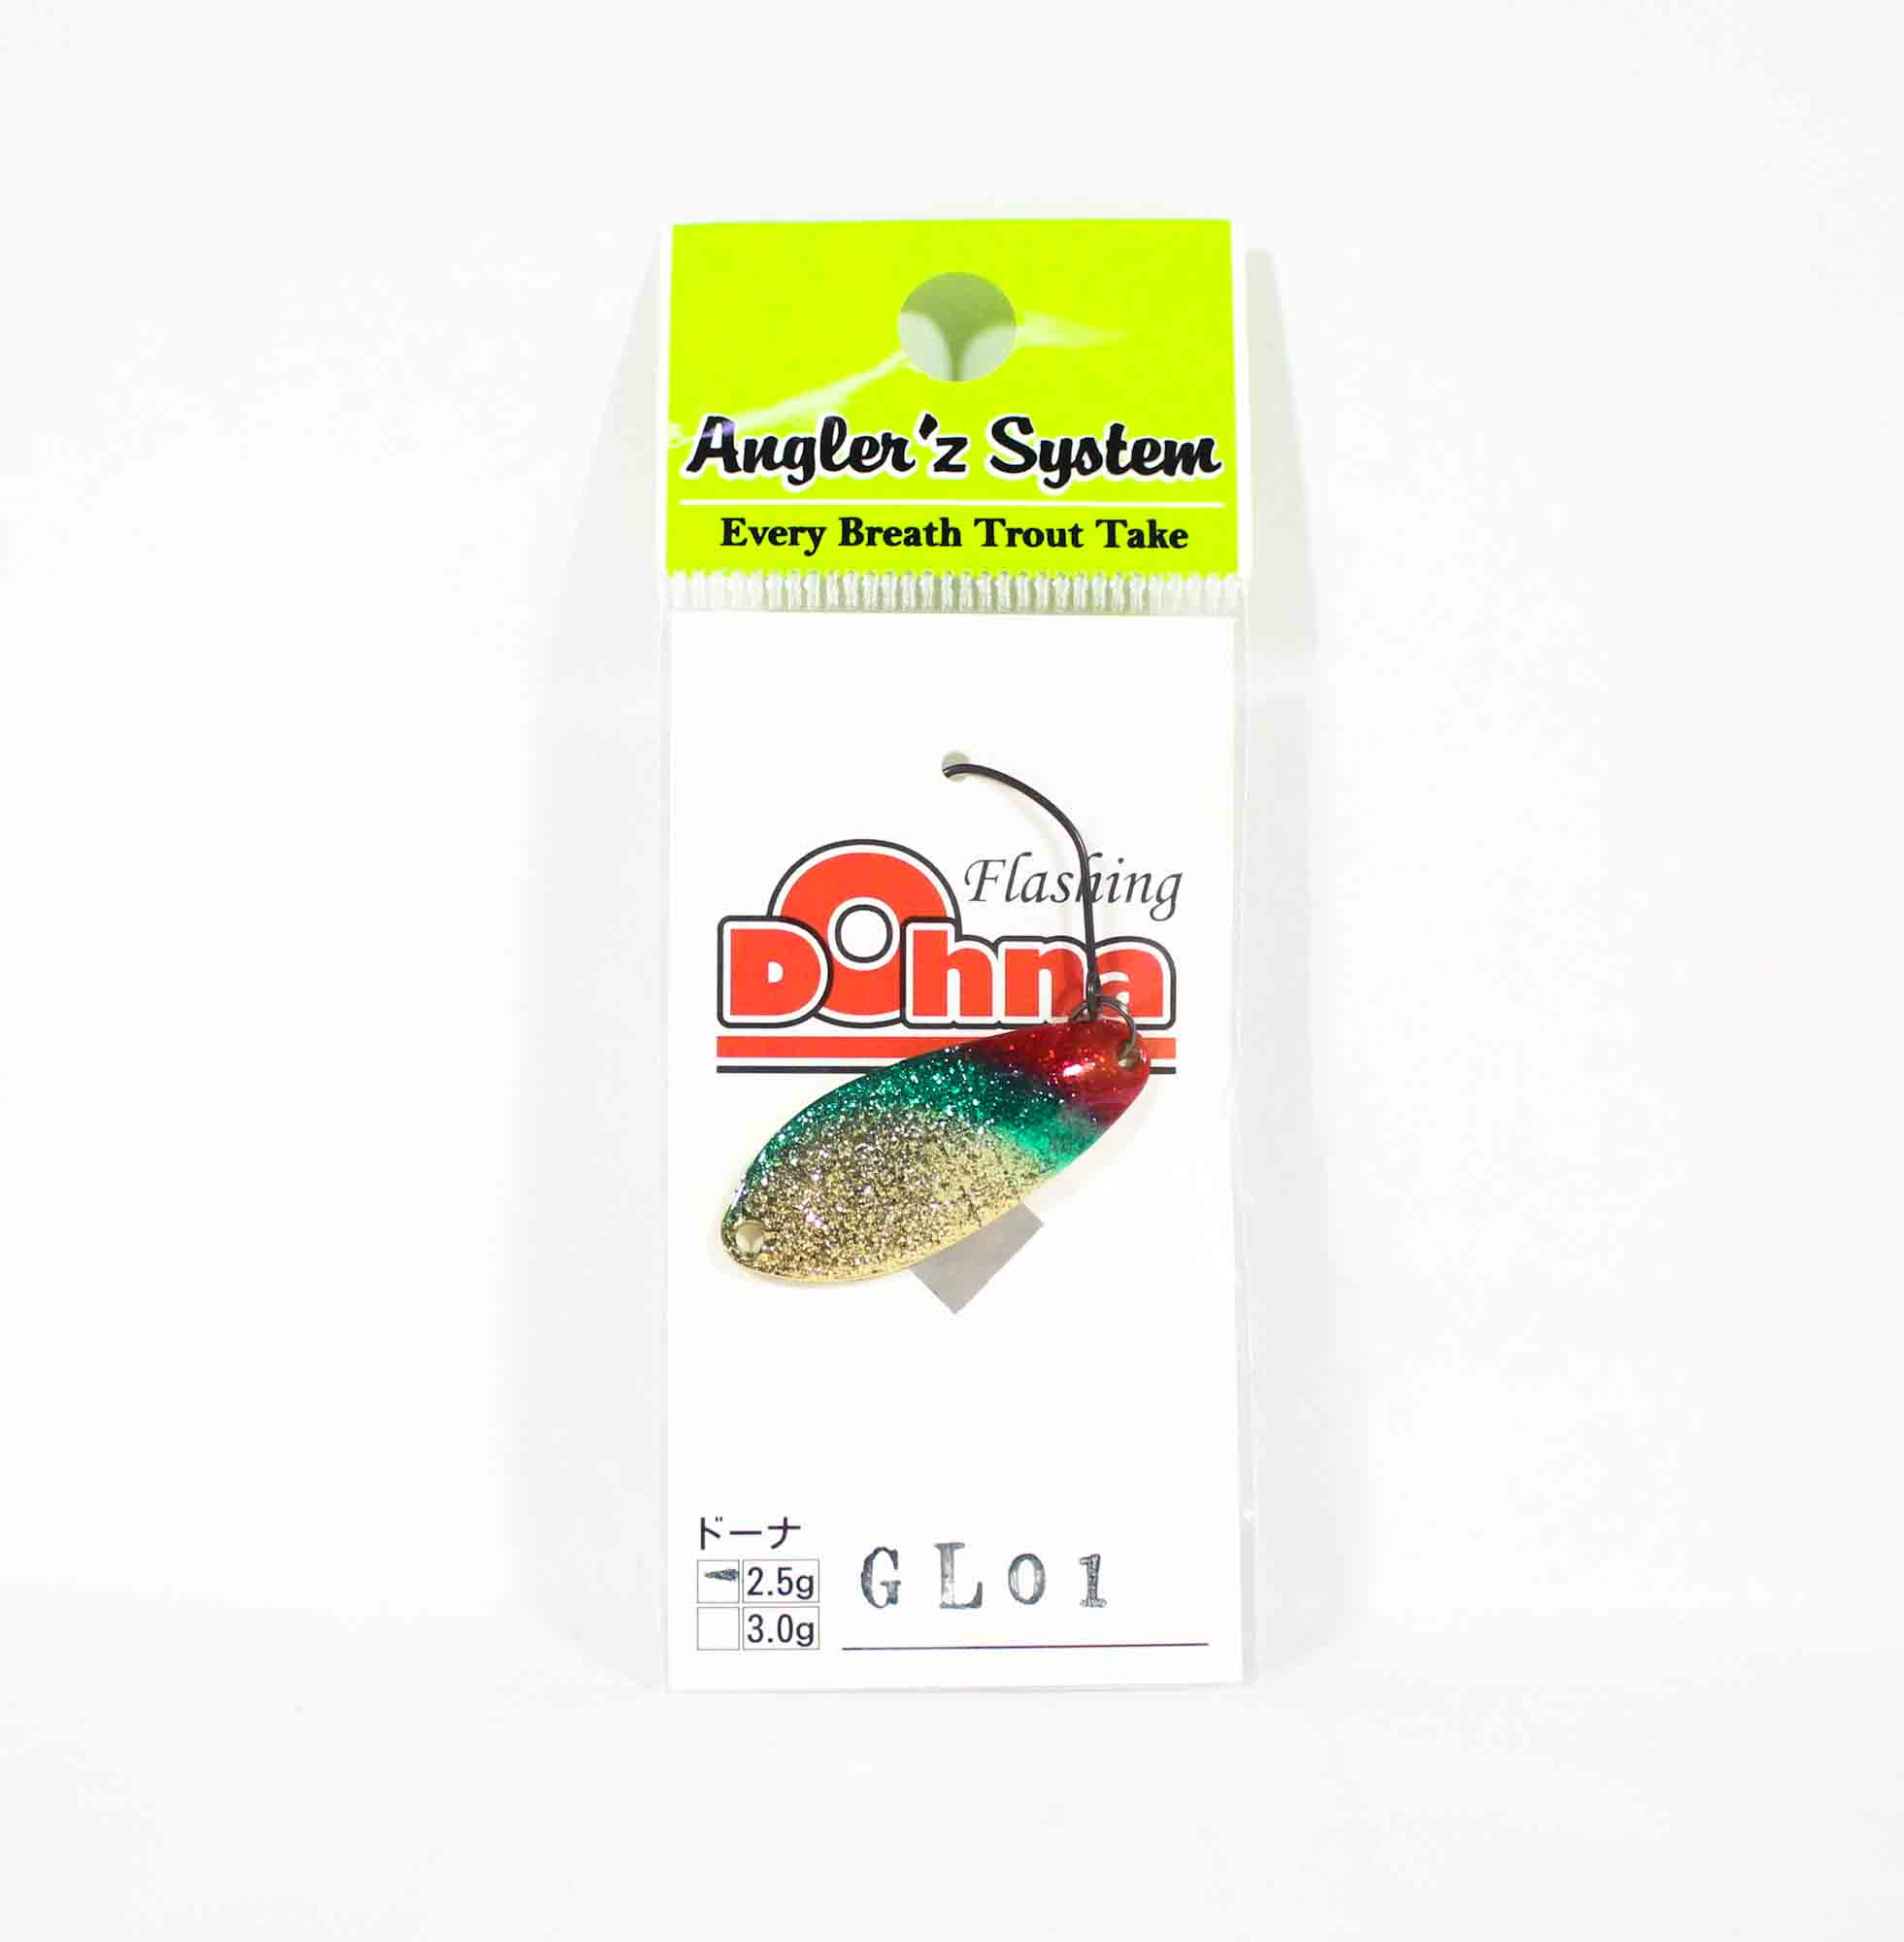 Anglers System Antem Dohna 2.5 grams Spoon Sinking Lure GL01 (6543)